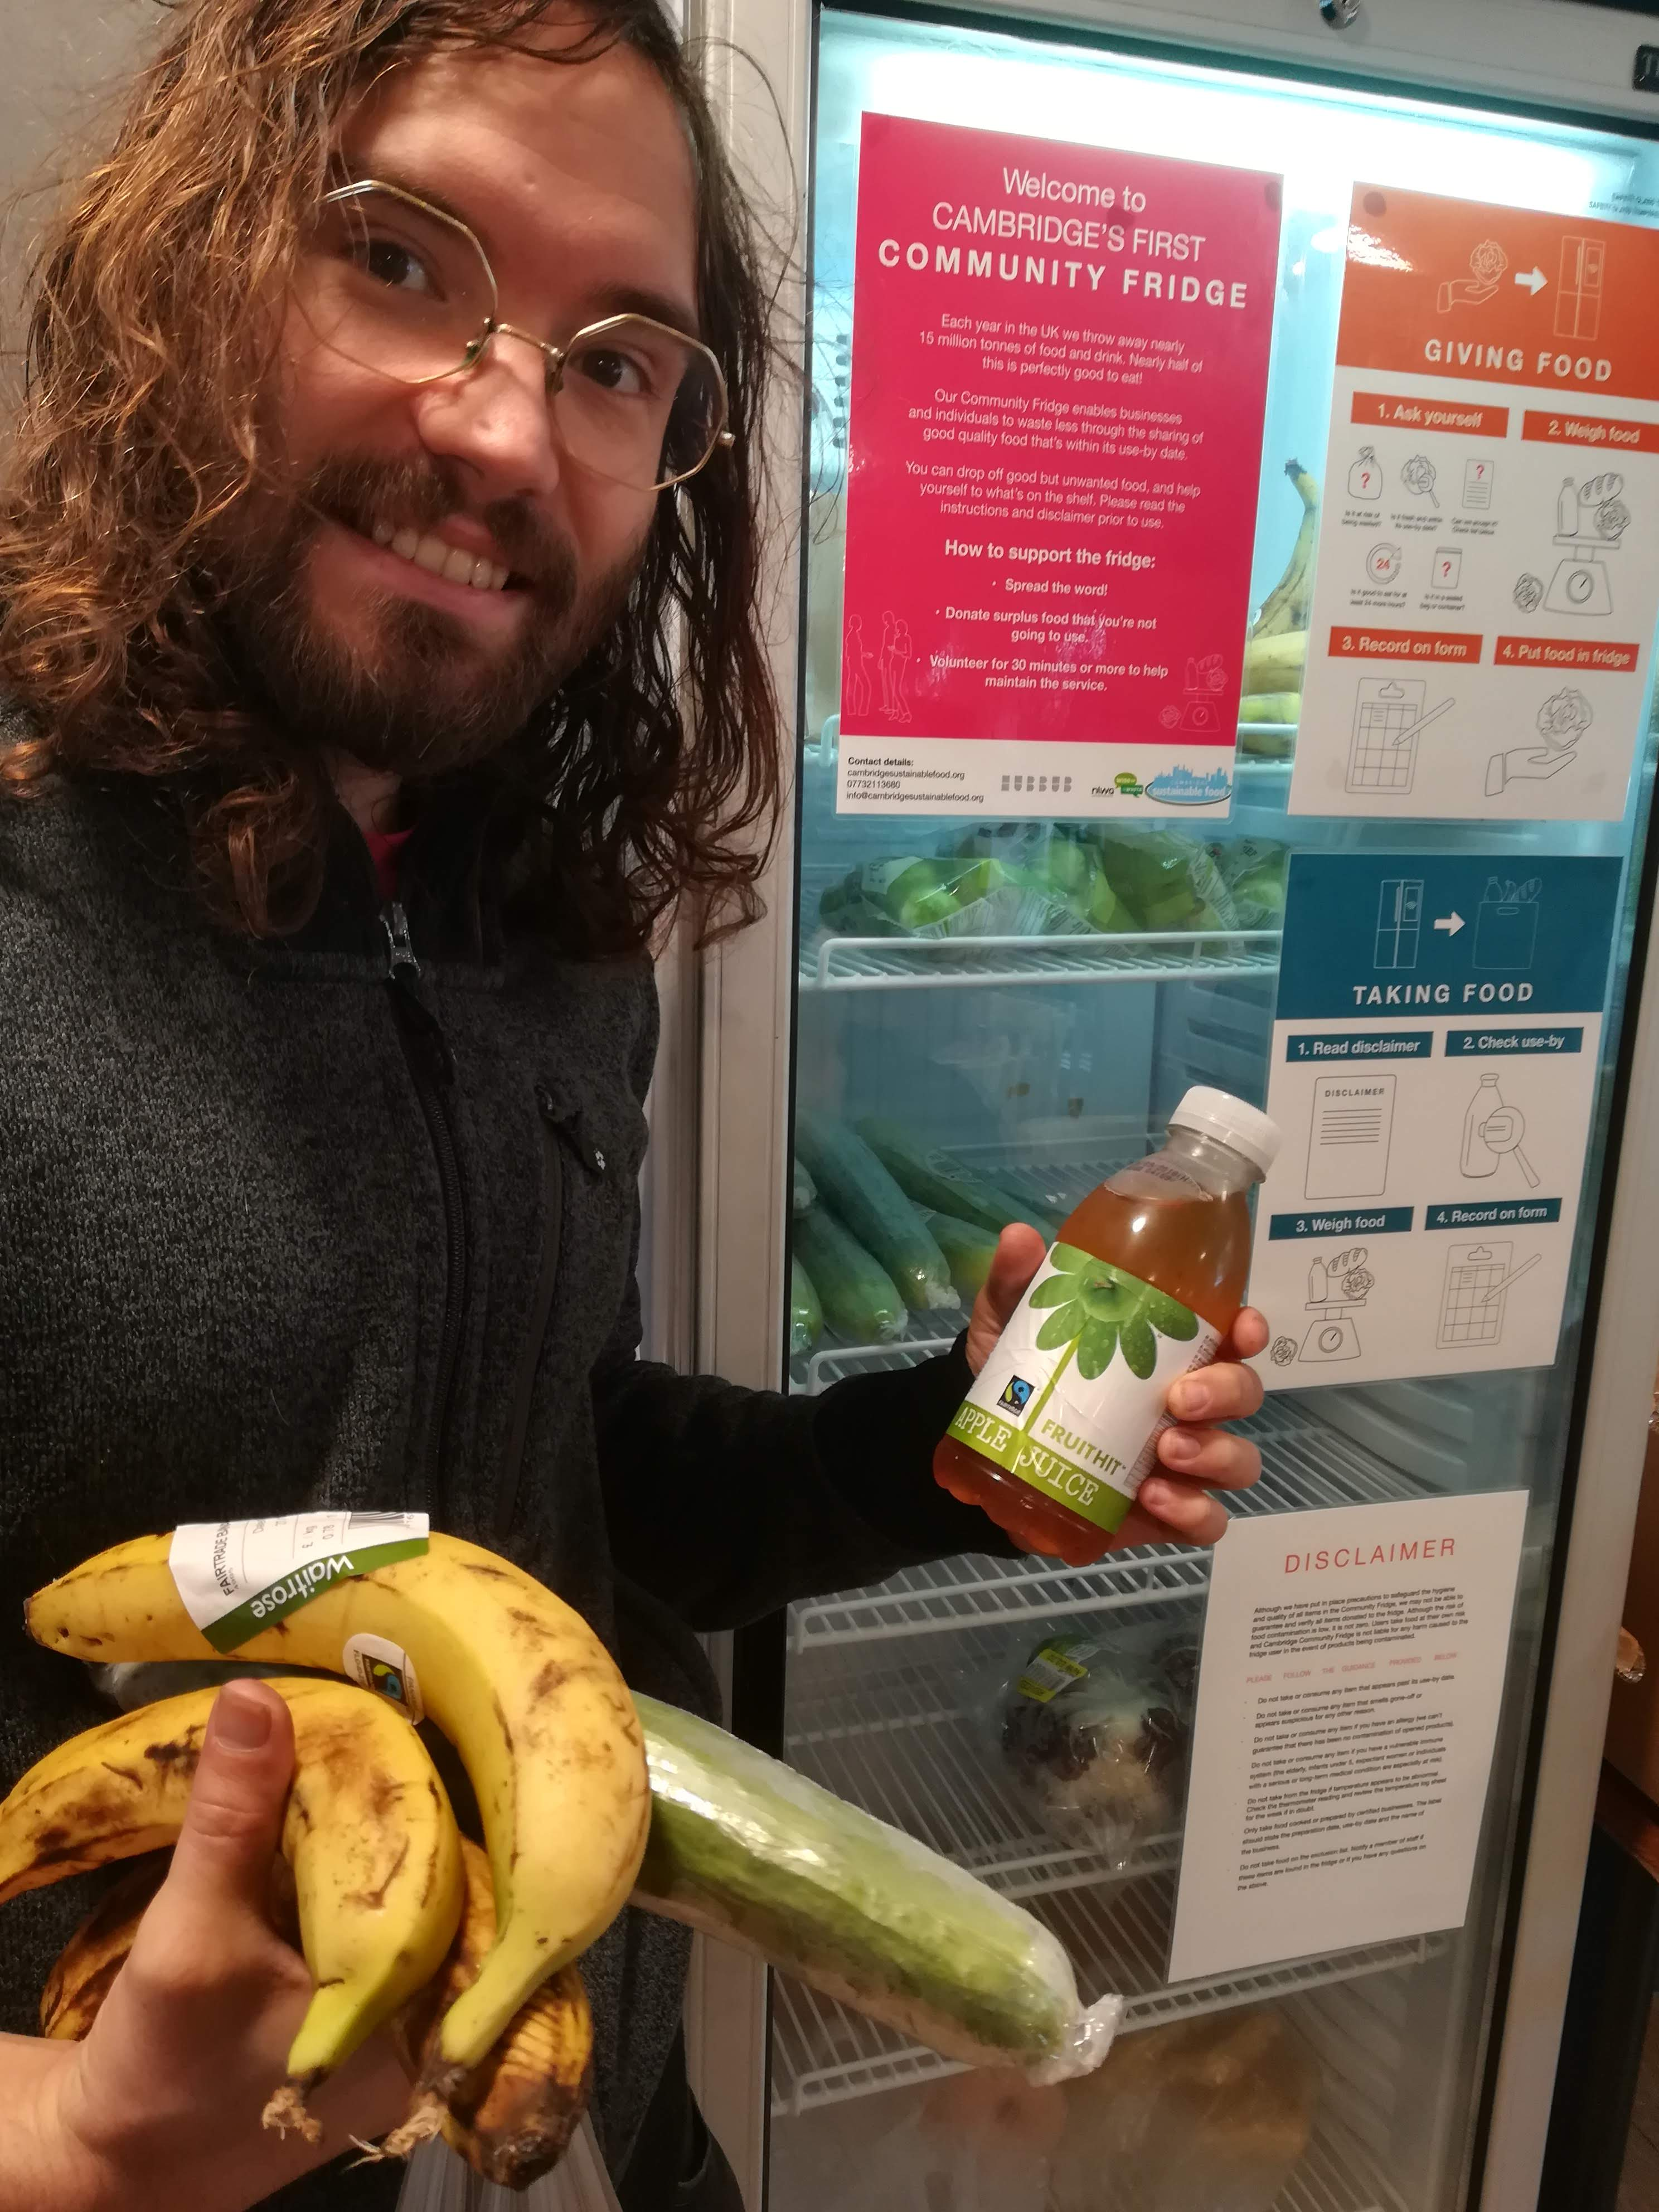 Paul holding bananas, a cucumber and some apple juice from the community fridge